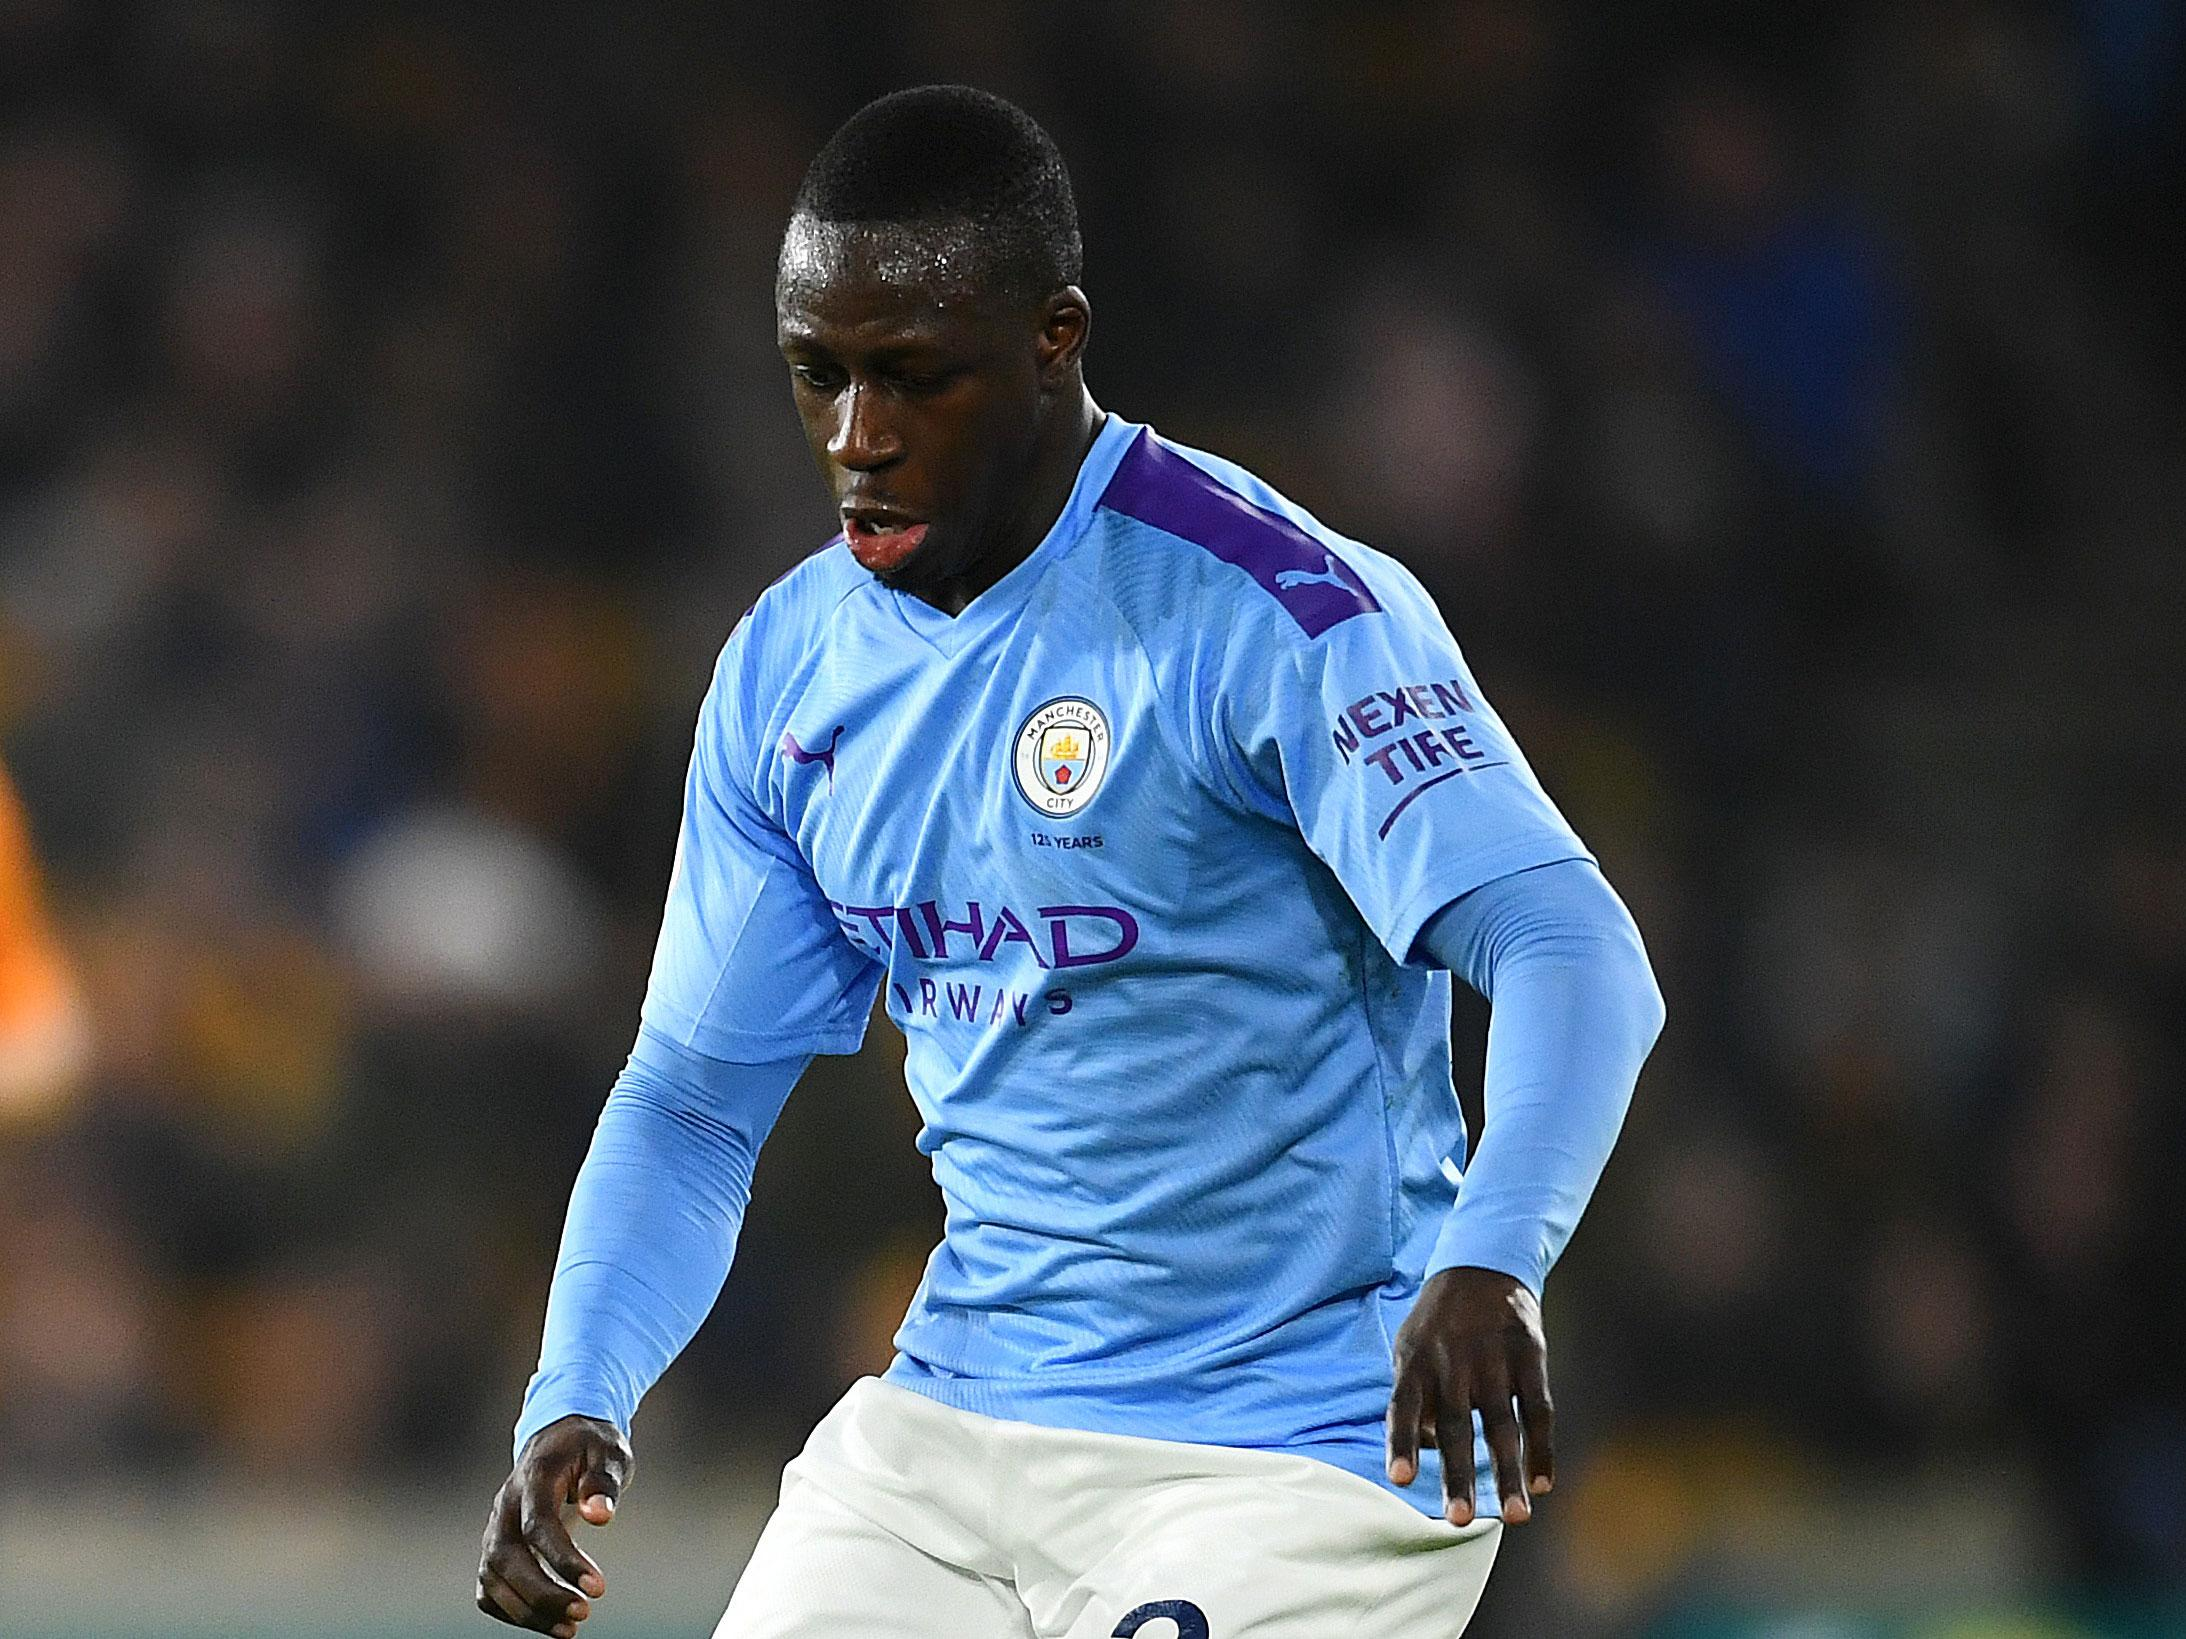 Benjamin Mendy insists Manchester City are not 'finished' despite latest setback against Crystal Palace